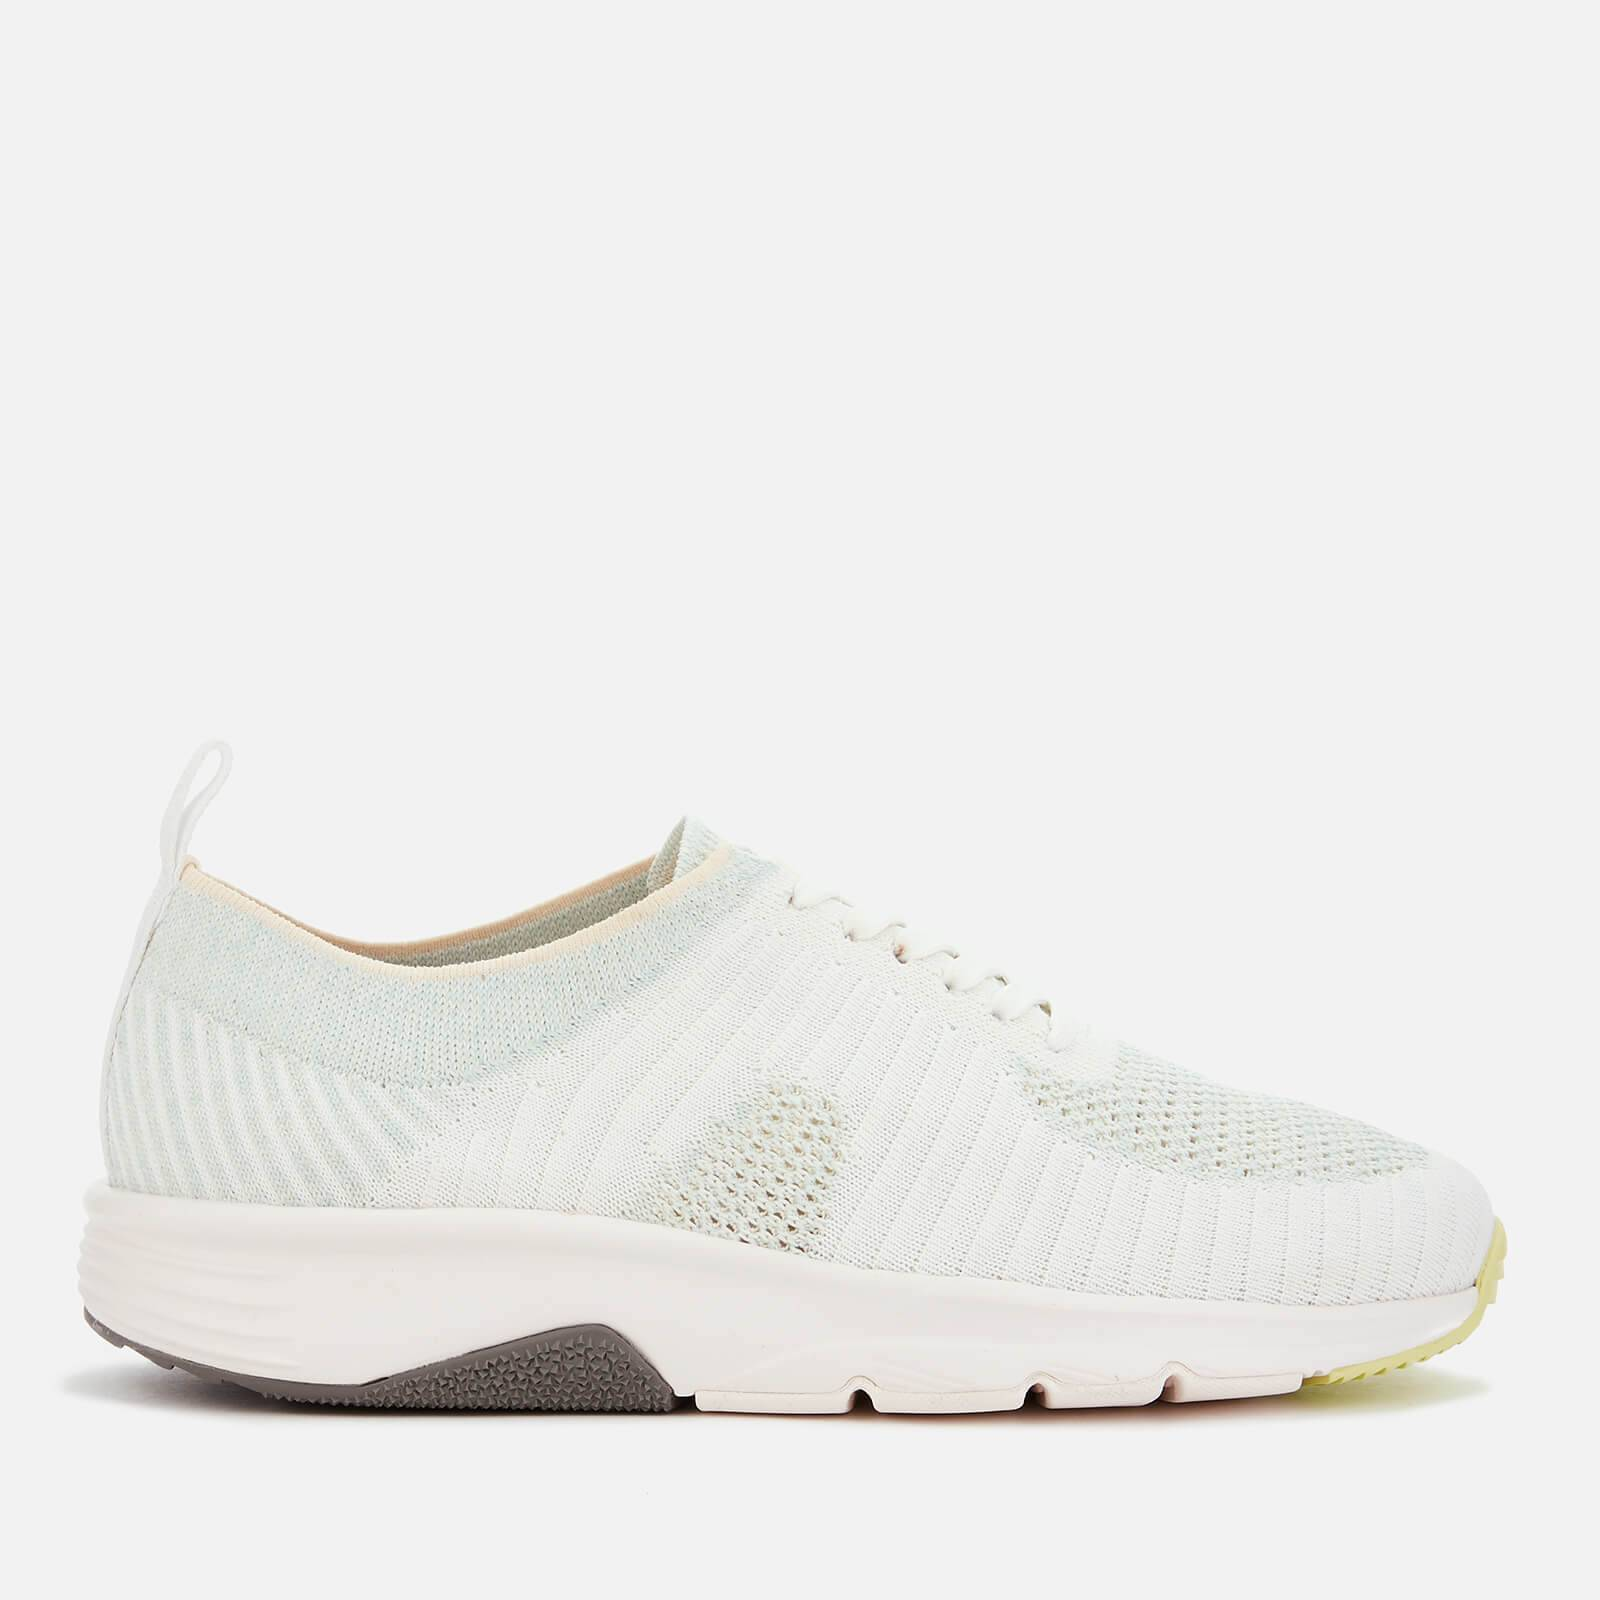 Camper Women's Knitted Running Style Trainers - Multi - UK 6 - White